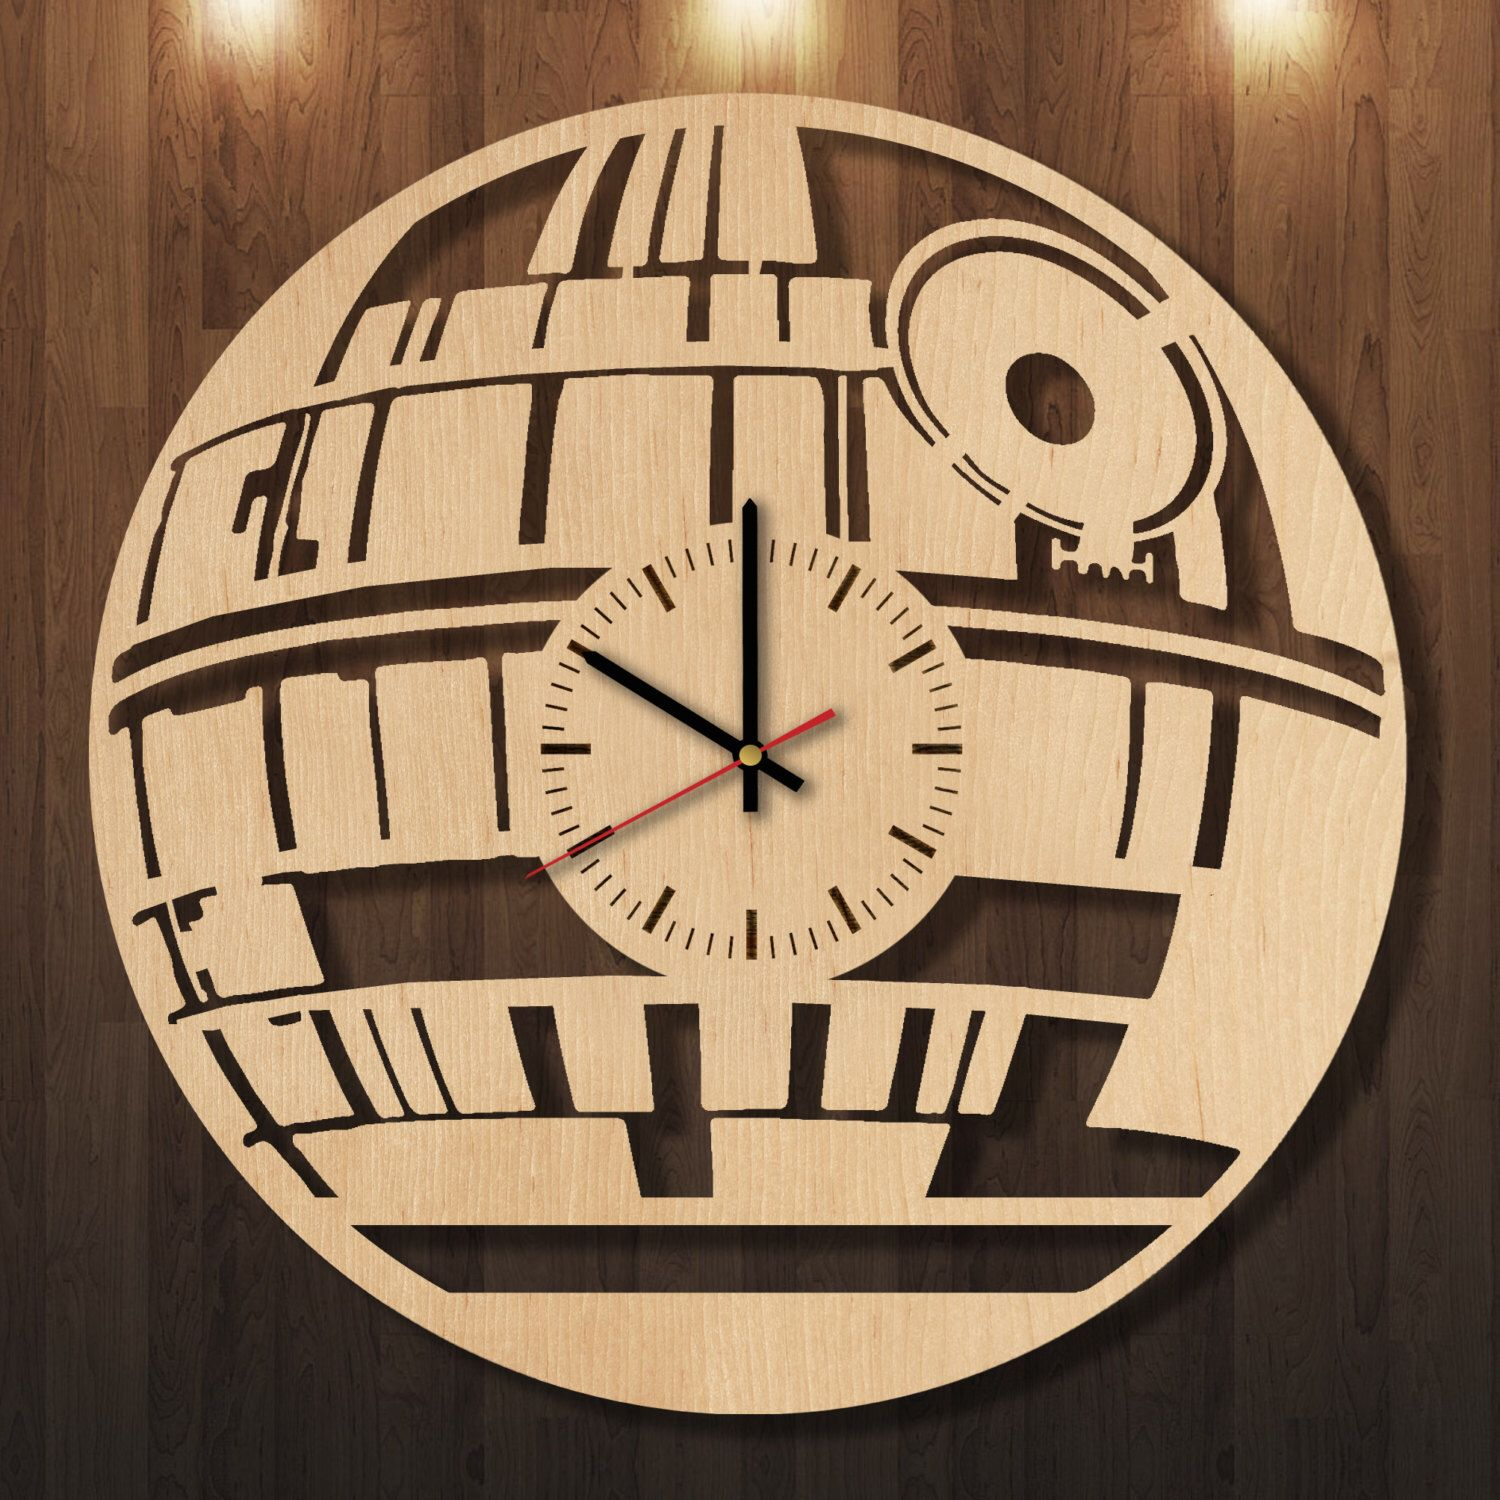 Star Wars wooden clock, wall clock, wall art, wall decor, wood clock ...